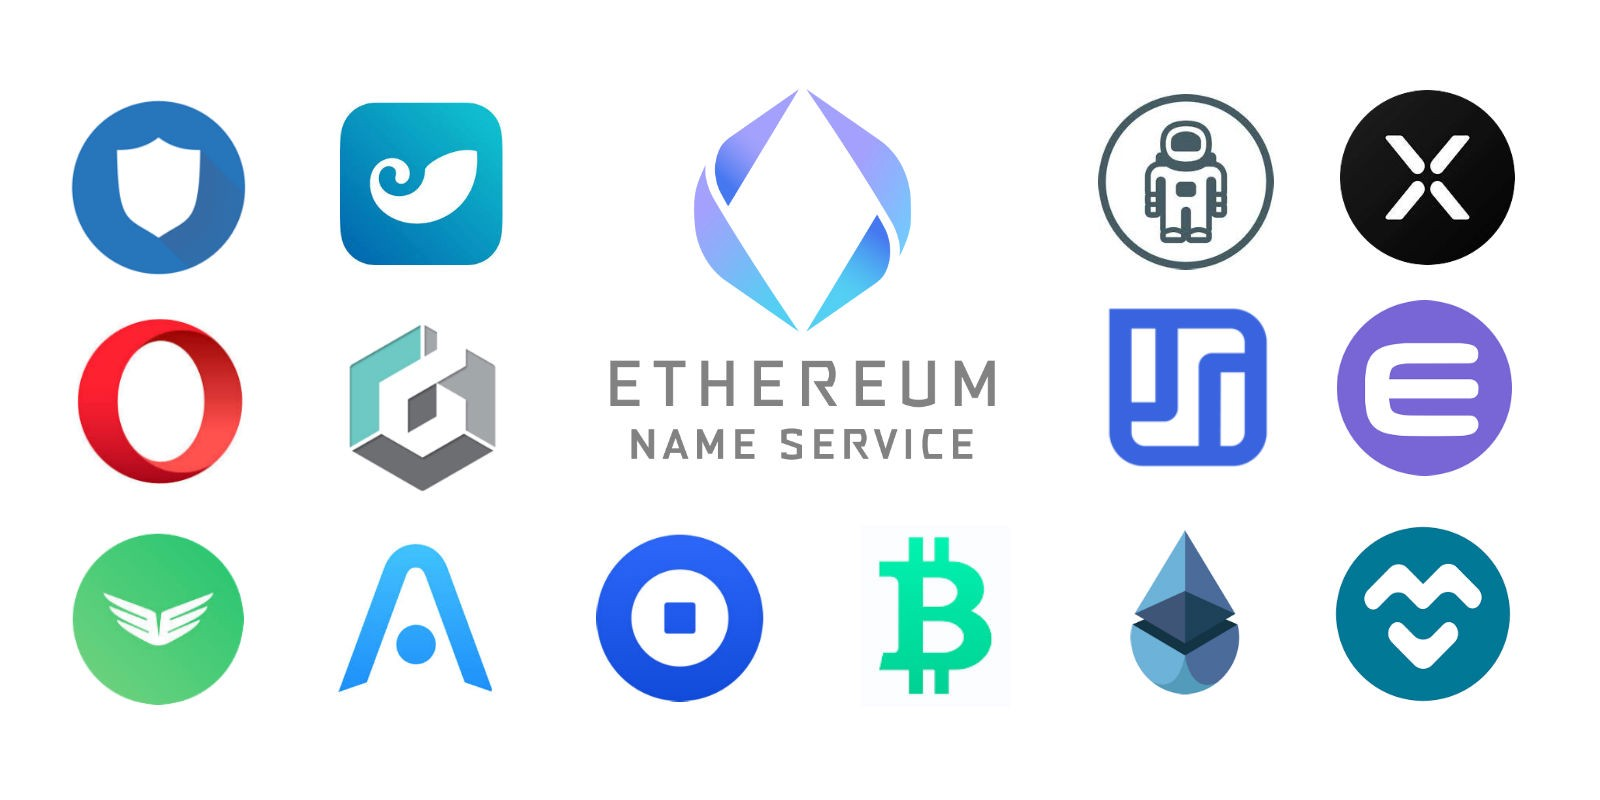 Ethereum Name Service Adds Infrastructure for Multi-Currency Support